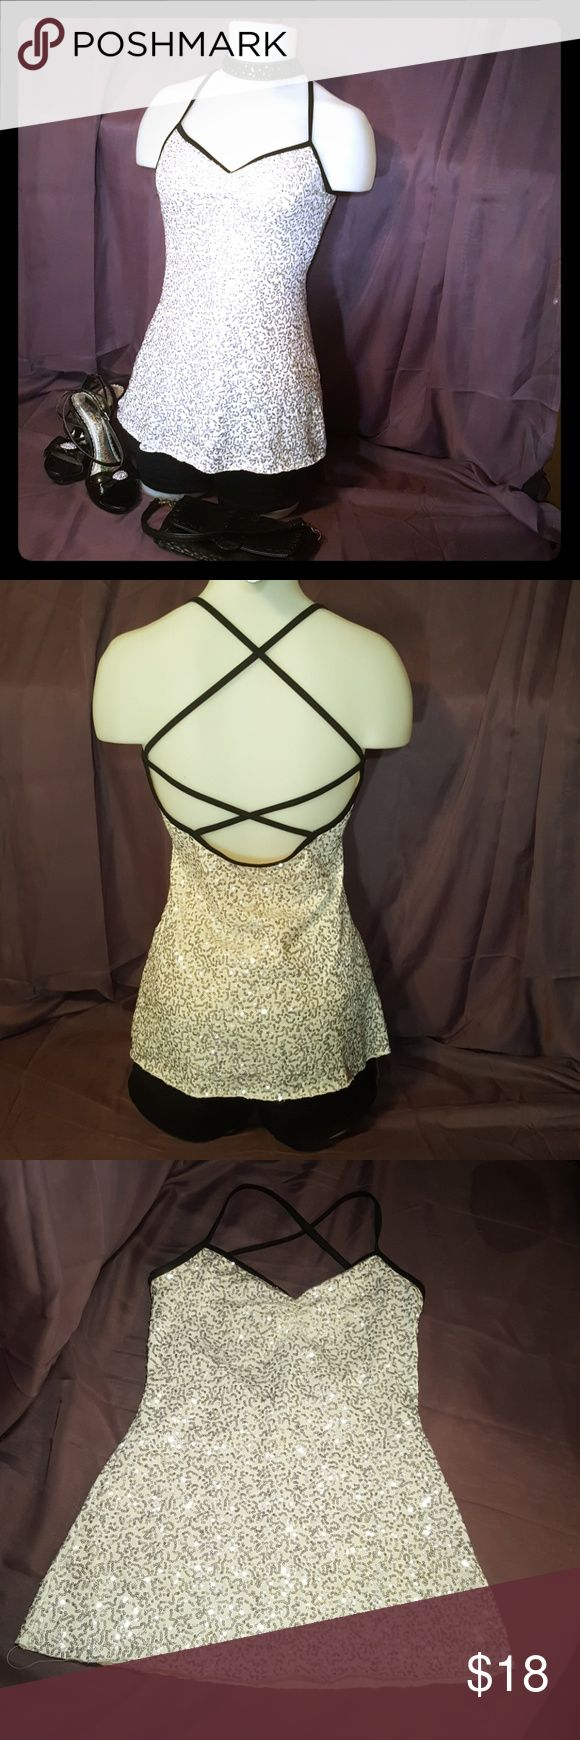 💋SEXY White V-Neck Sequin Top This top would be perfect for ladies night🍷 or New Year's Eve!🍾 it is white with silver sequin and black trim,  v-neck fully lined with a low-cut strappy back! It's polyester spandex so it's got a little bit of stretch to it and it's longer in length. It goes to about mid hip on me and I'm 5 3 Very sexy When on! Size S Tops Tunics